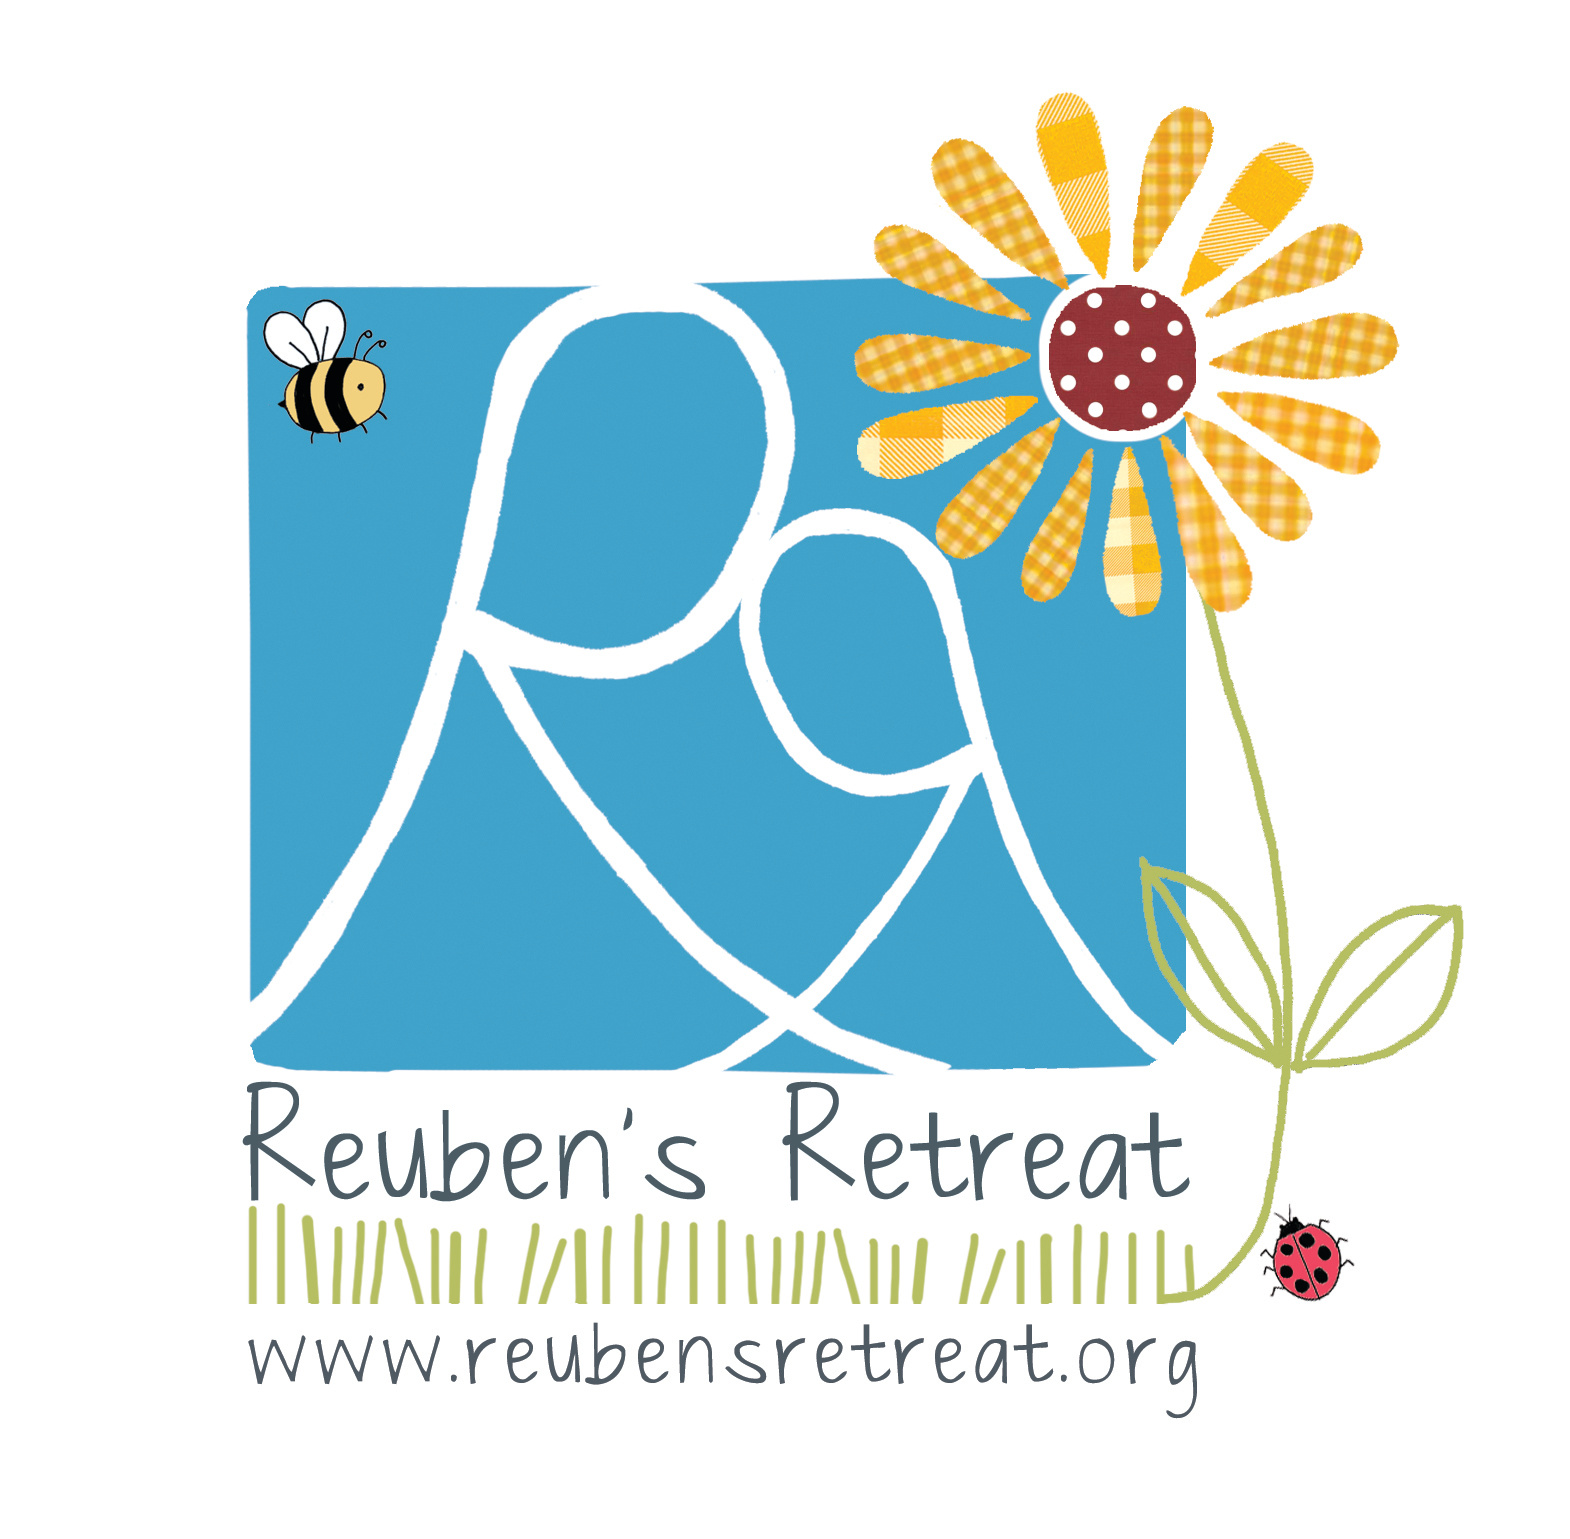 Reubens-retreat-logo-with-web